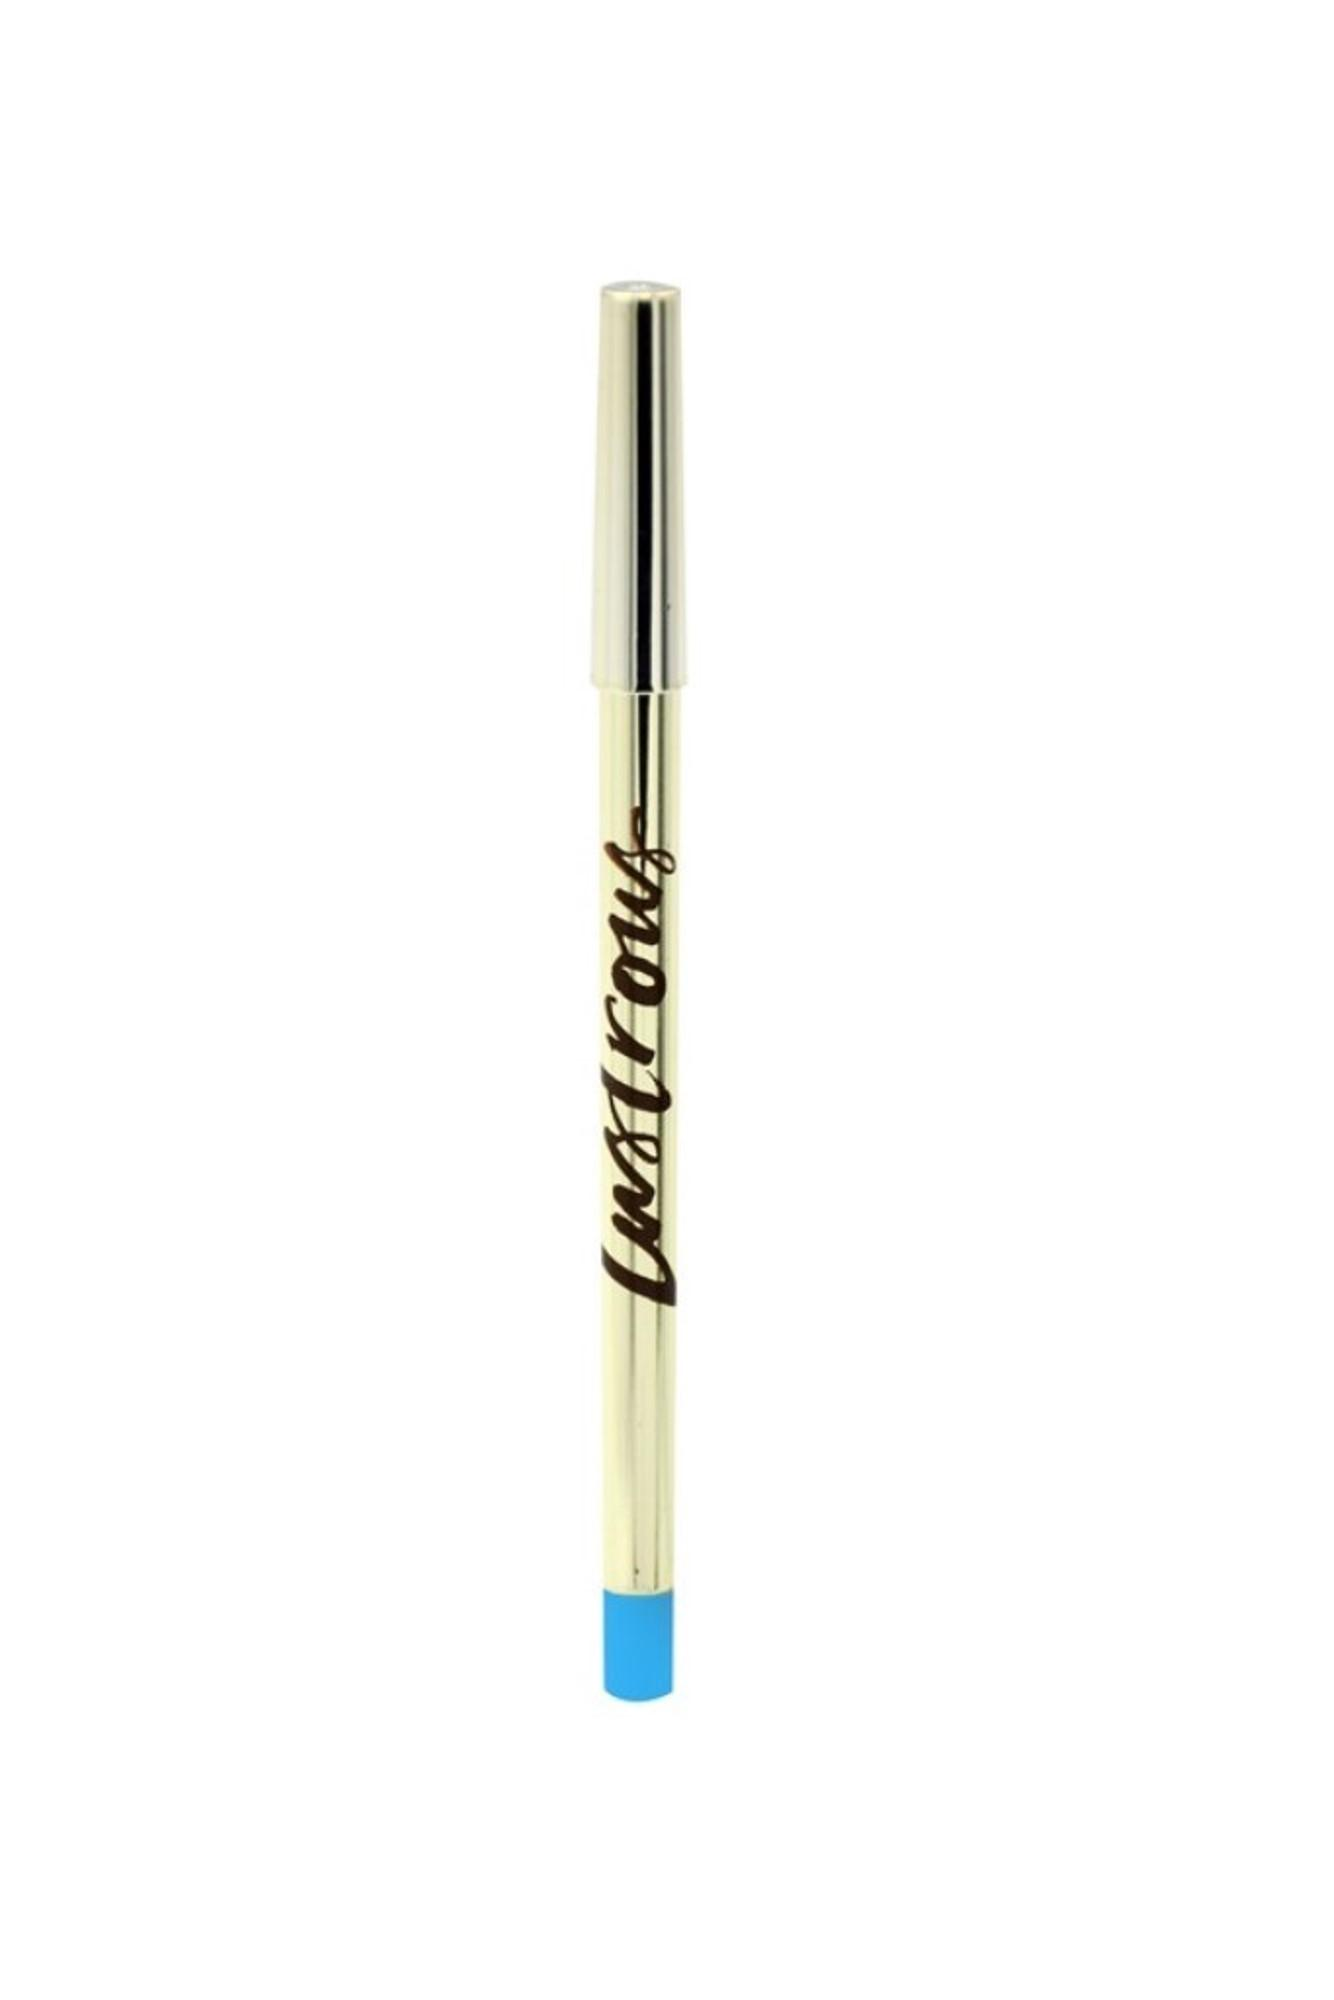 BYS Lustrous Eyeliner Pencil 02 Turquoise Philippines